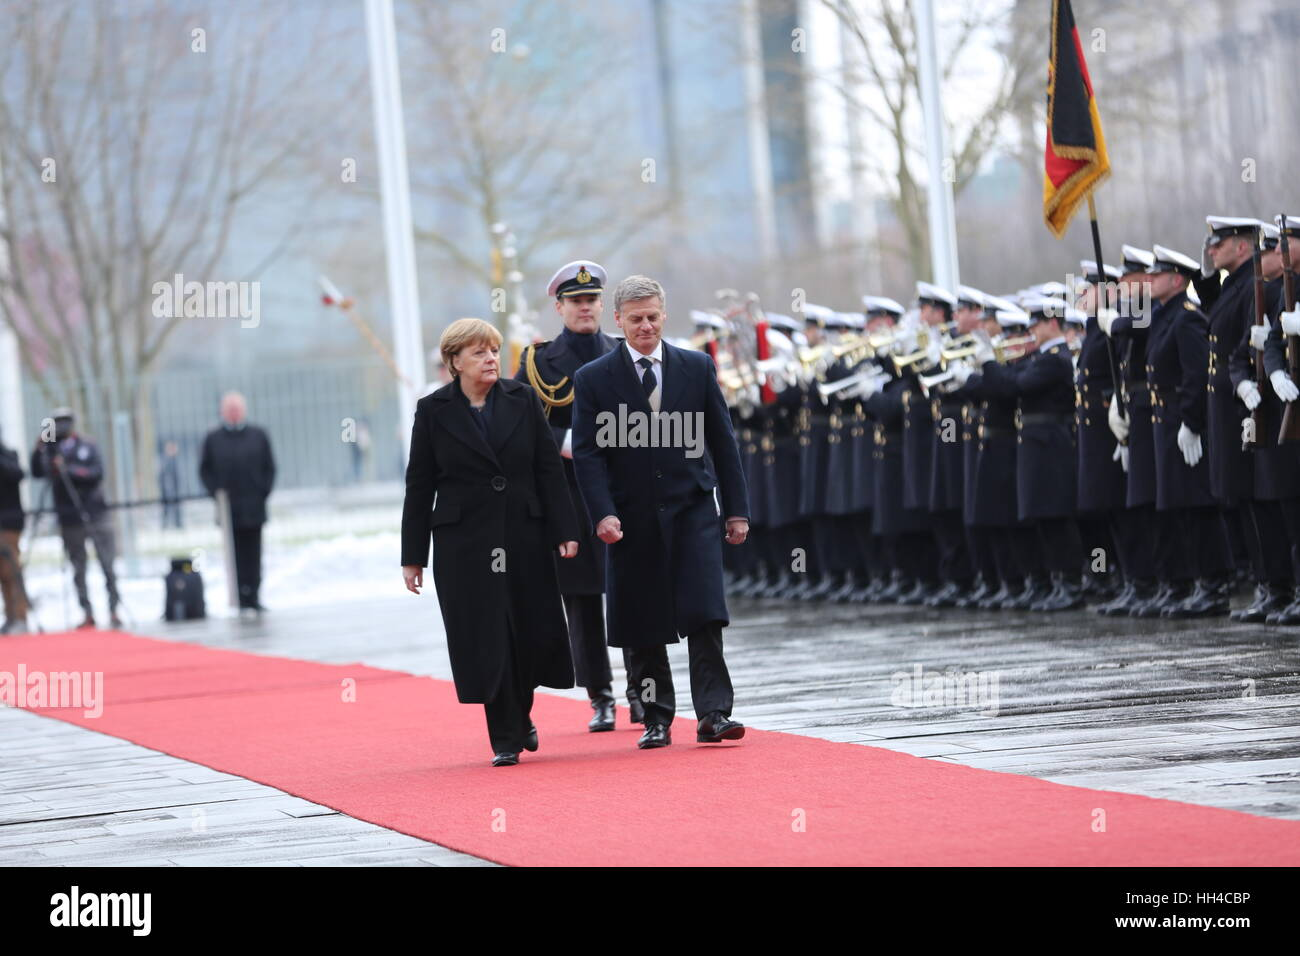 Berlin, Germany. 16th Jan, 2017. Federal Chancellor Angela Merkel and New Zealand prime minister Bill Englisch. - Stock Image